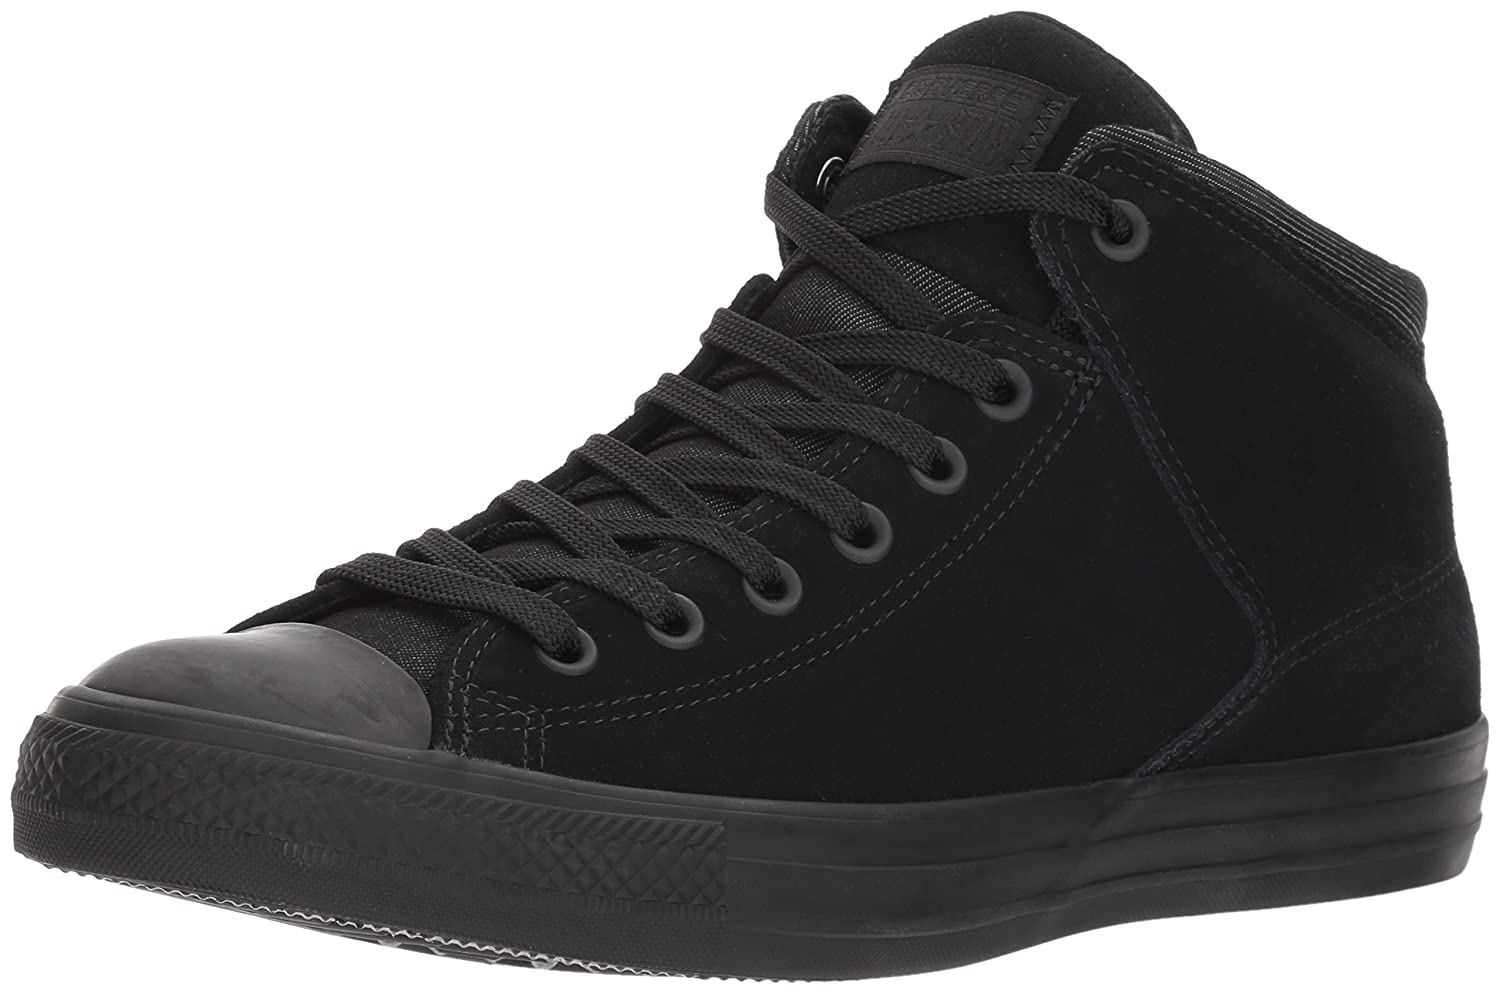 Converse Men's Chuck Taylor High Street Mid Top with Thermal Lining B06XHNCK4D 10 D(M) US|Black/Black